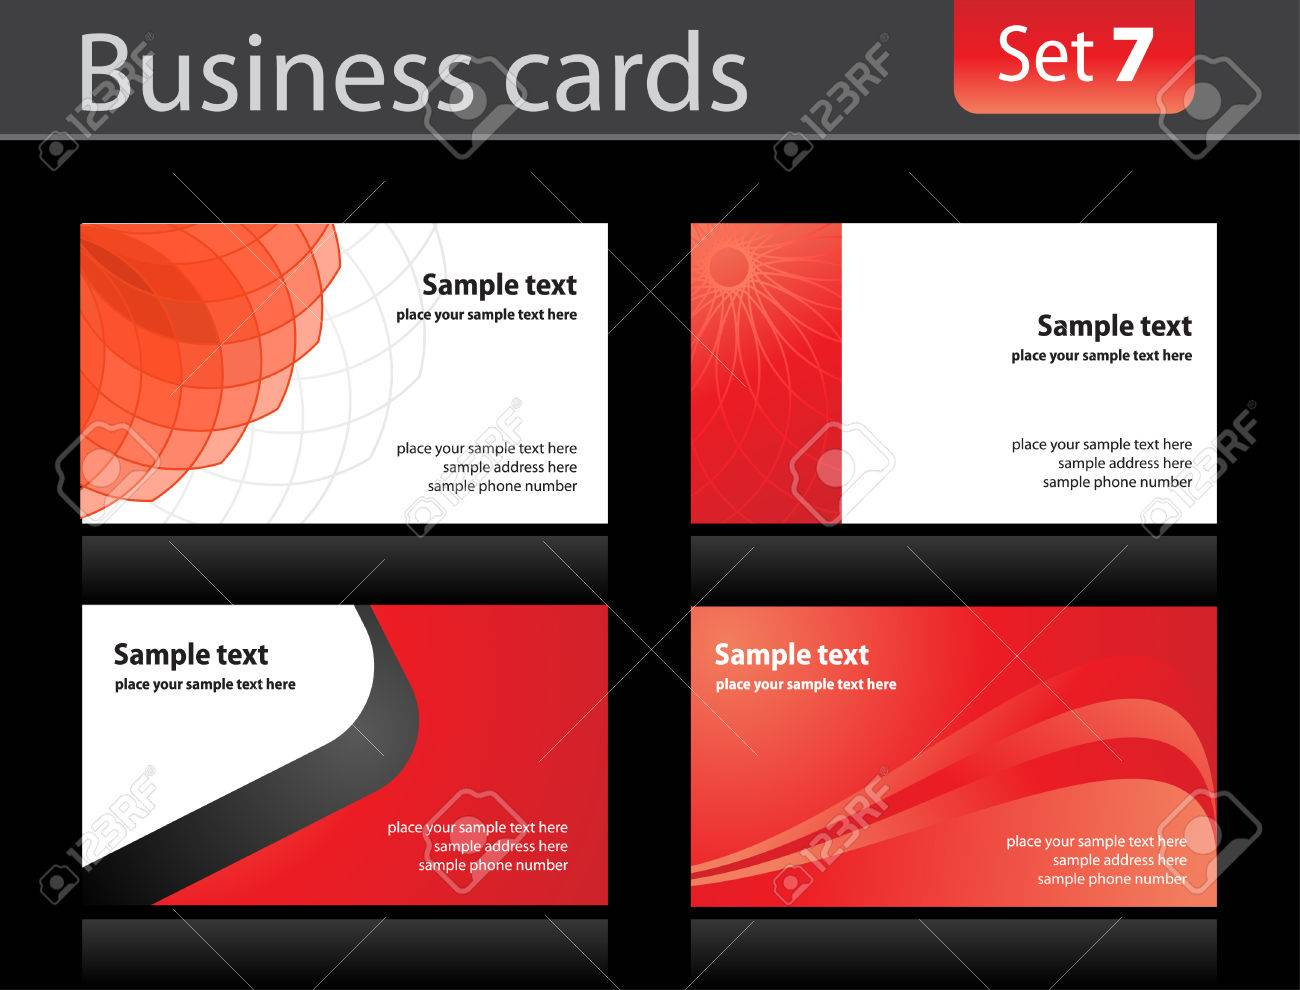 Business cards templates Stock Vector - 6521806